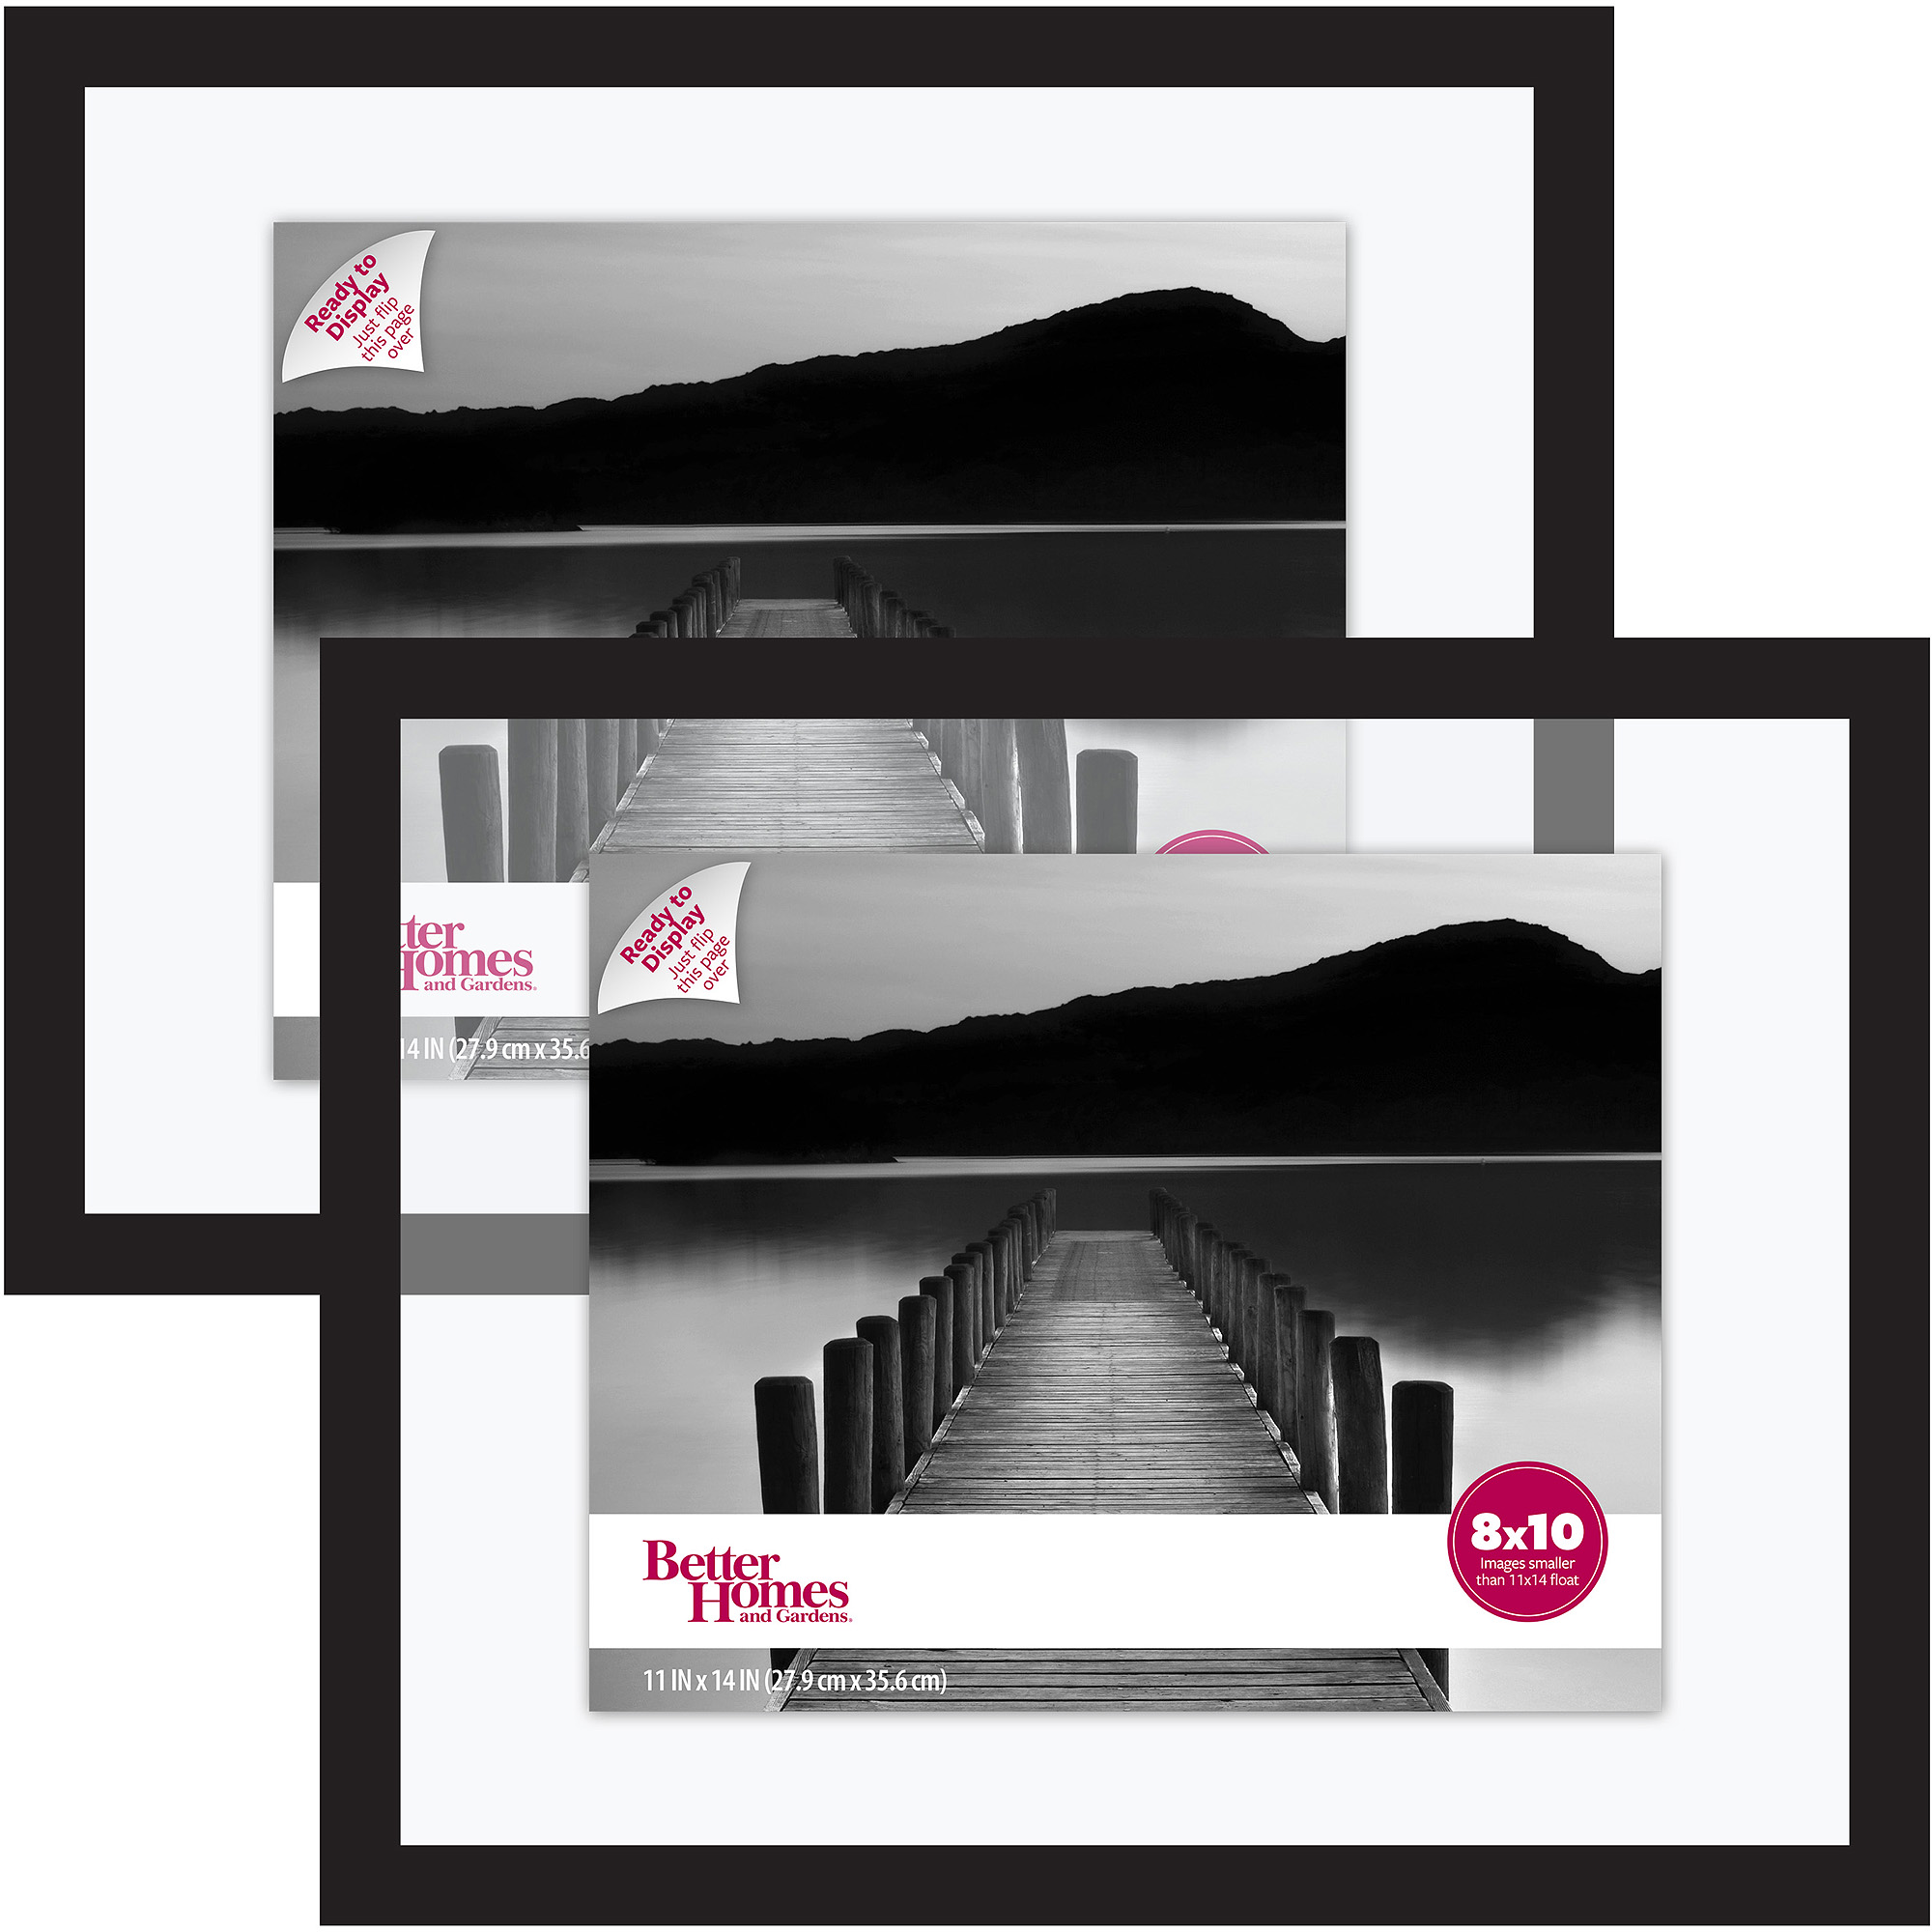 Better Homes and Gardens Float Picture Frame, Black, Set of 2